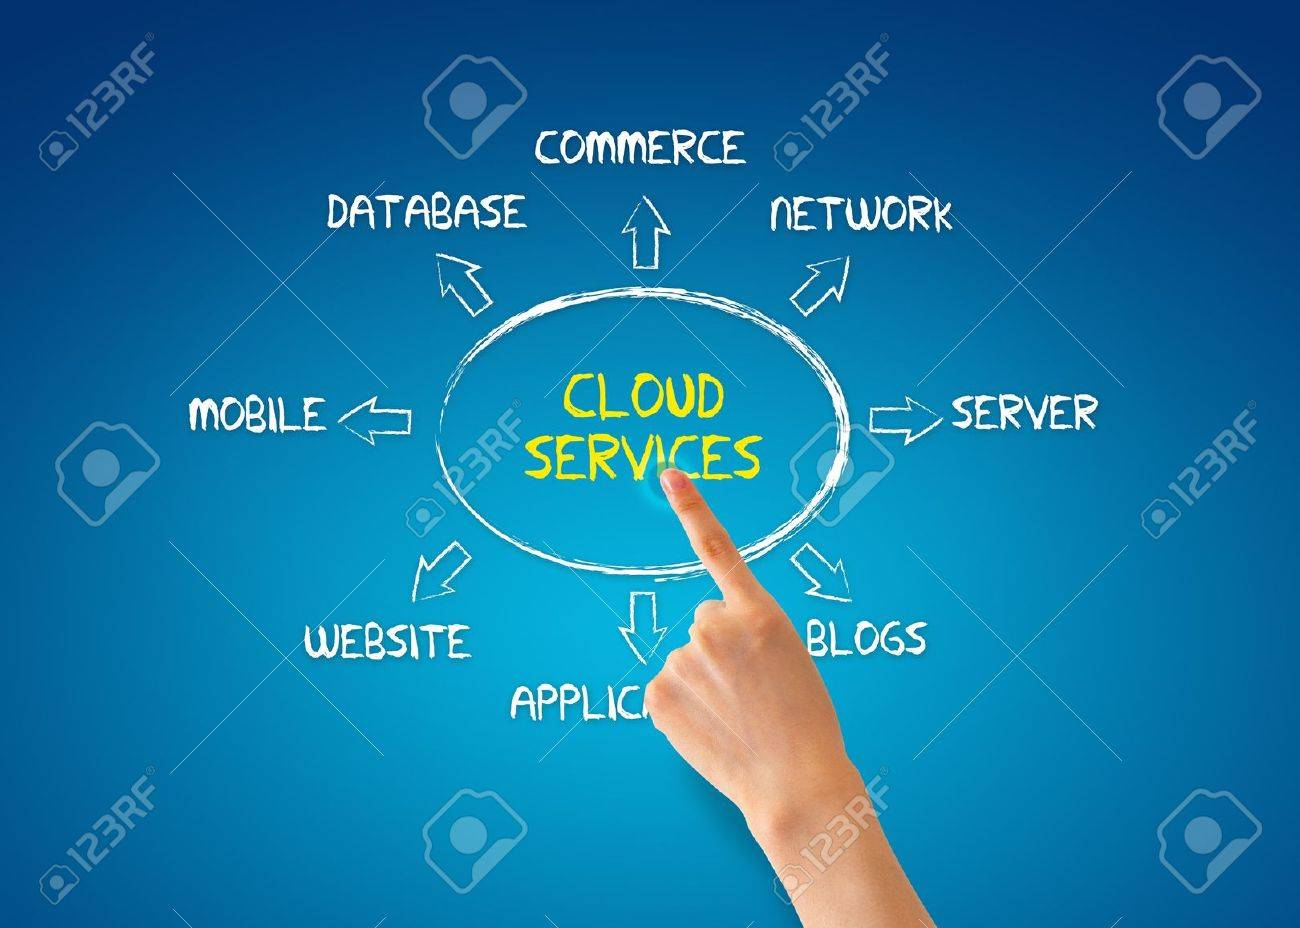 Hand pointing at a cloud services illustration. Stock Photo - 13027803